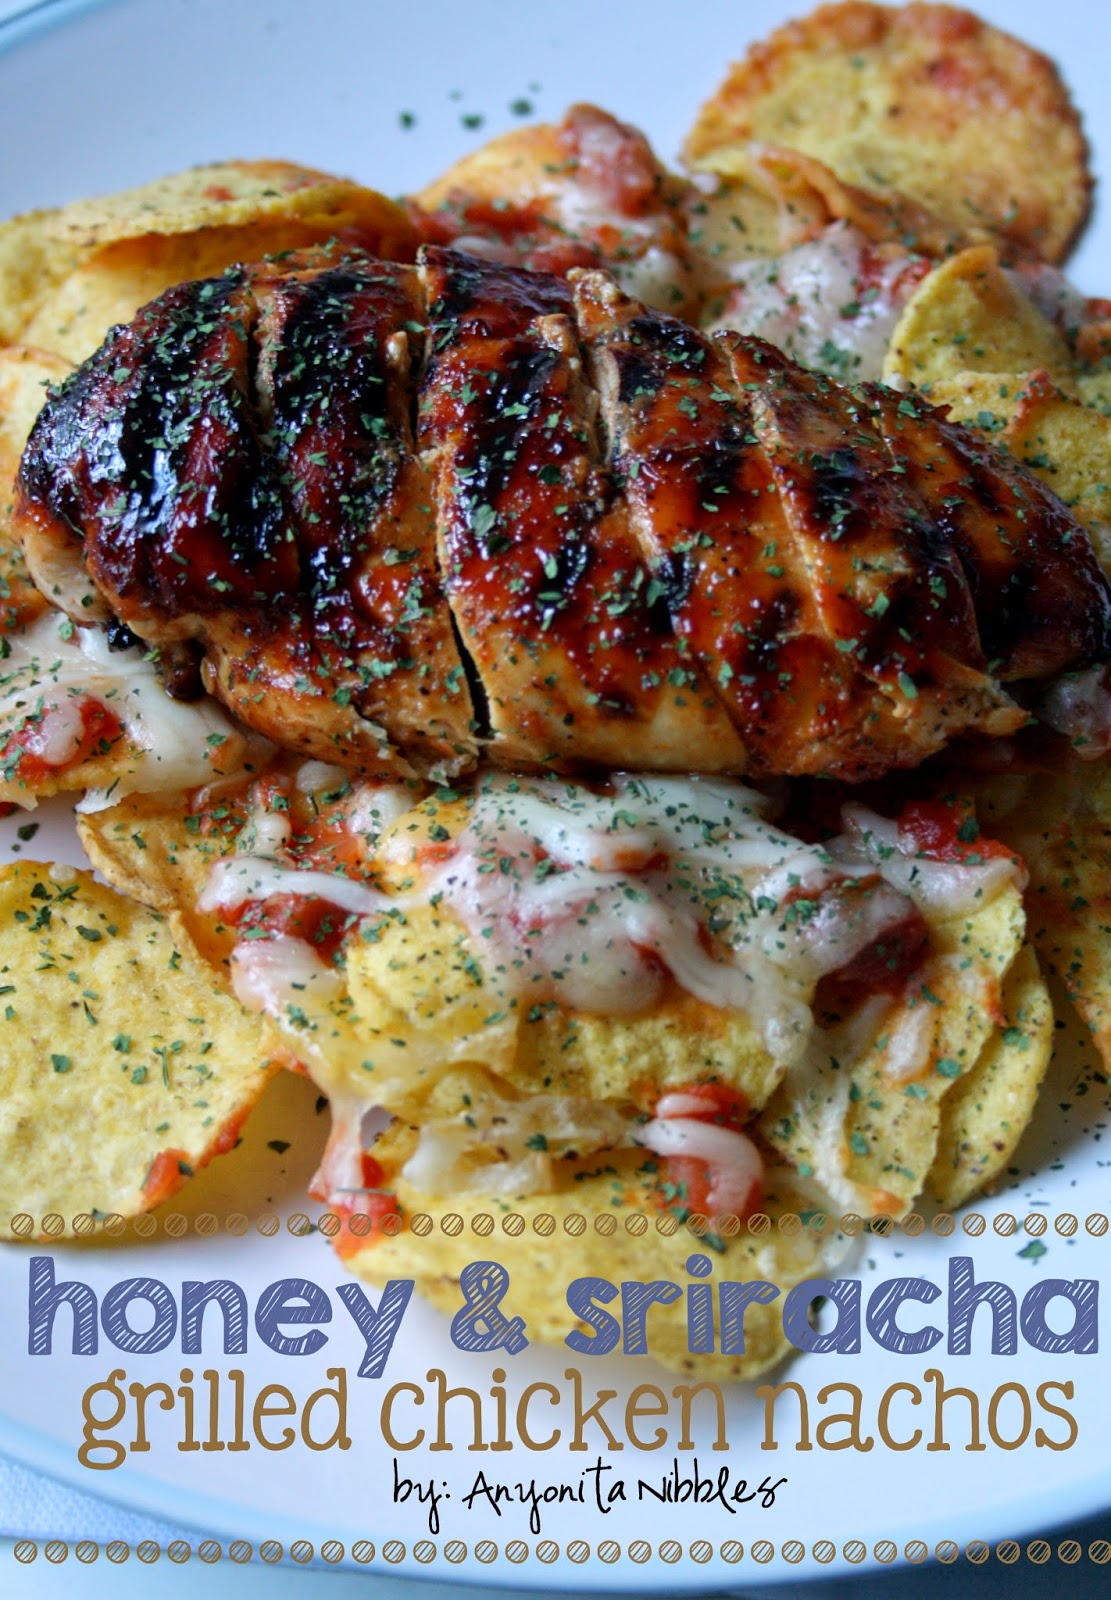 Honey & Sriracha Grilled Chicken Nachos from Anyonita-nibbles.co.uk